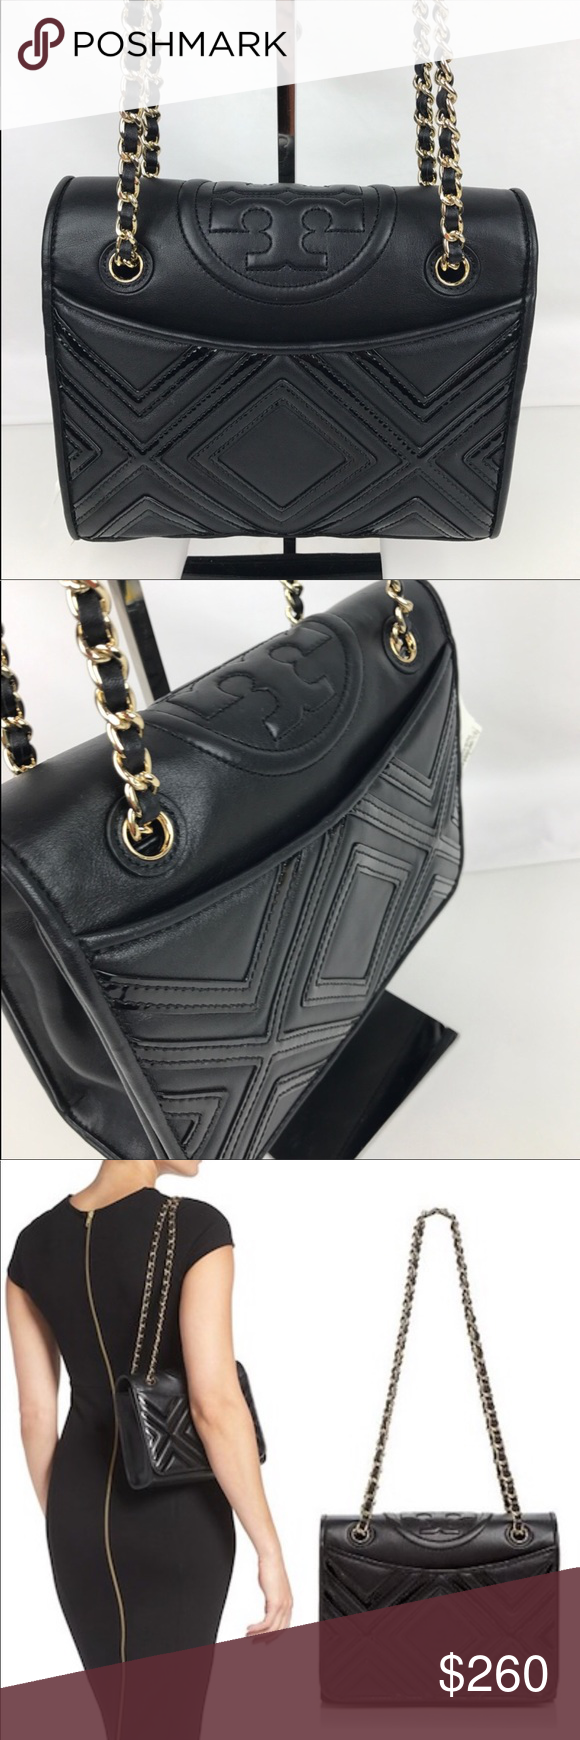 94baf6adf039 Authentic Tory Burch Fleming medium size Gorgeous Tory Burch medium  shoulder bag in geometric-quilted